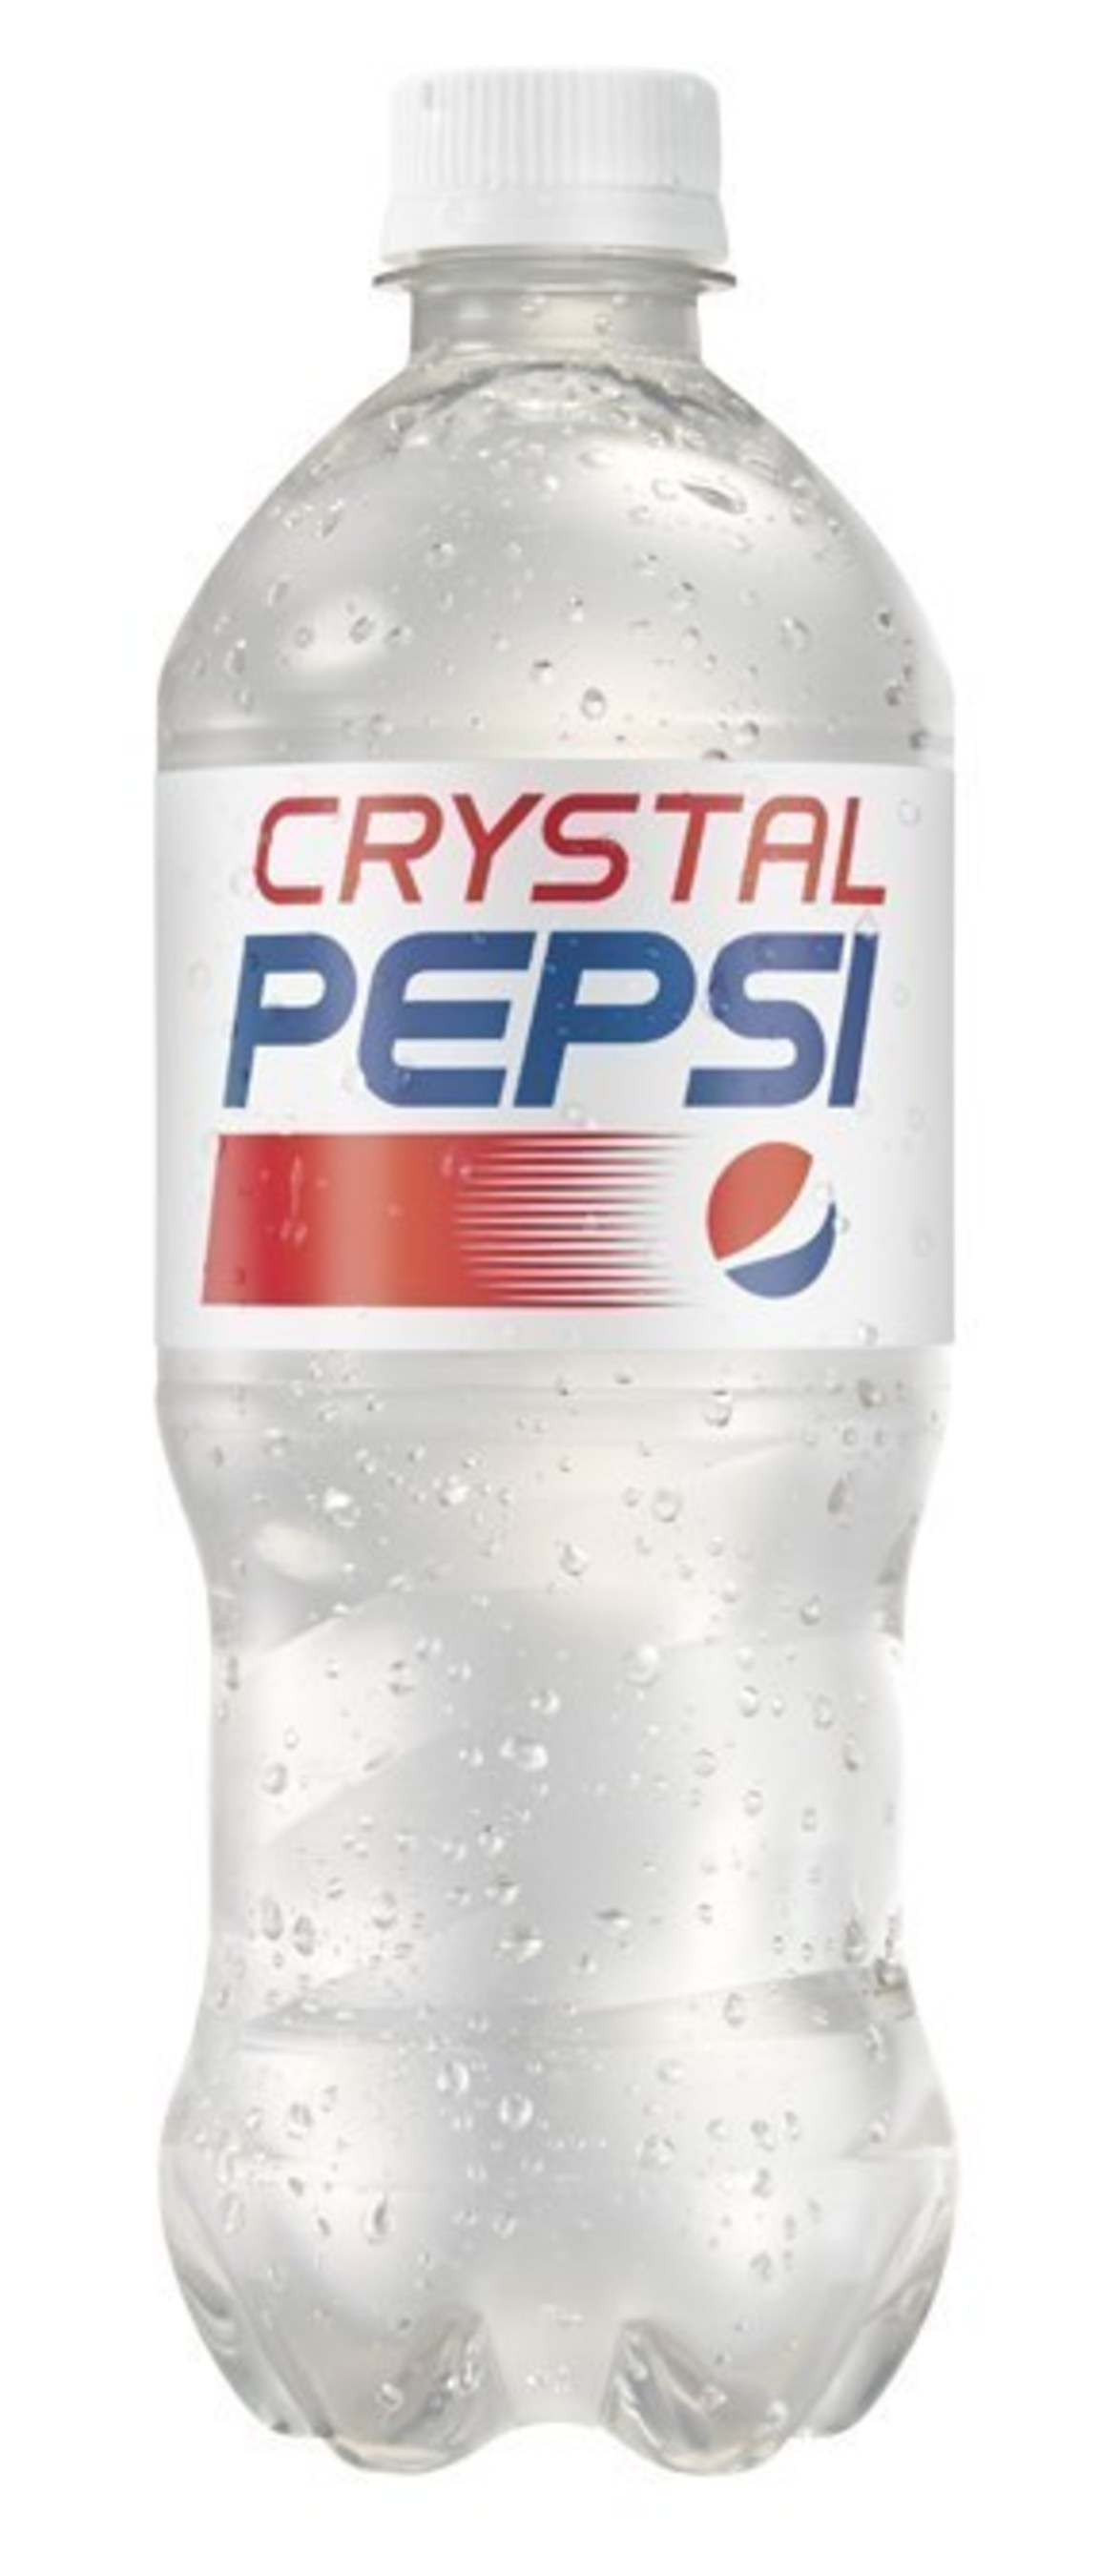 Crystal Pepsi will be available for a limited time in Canada and the U.S. this summer.